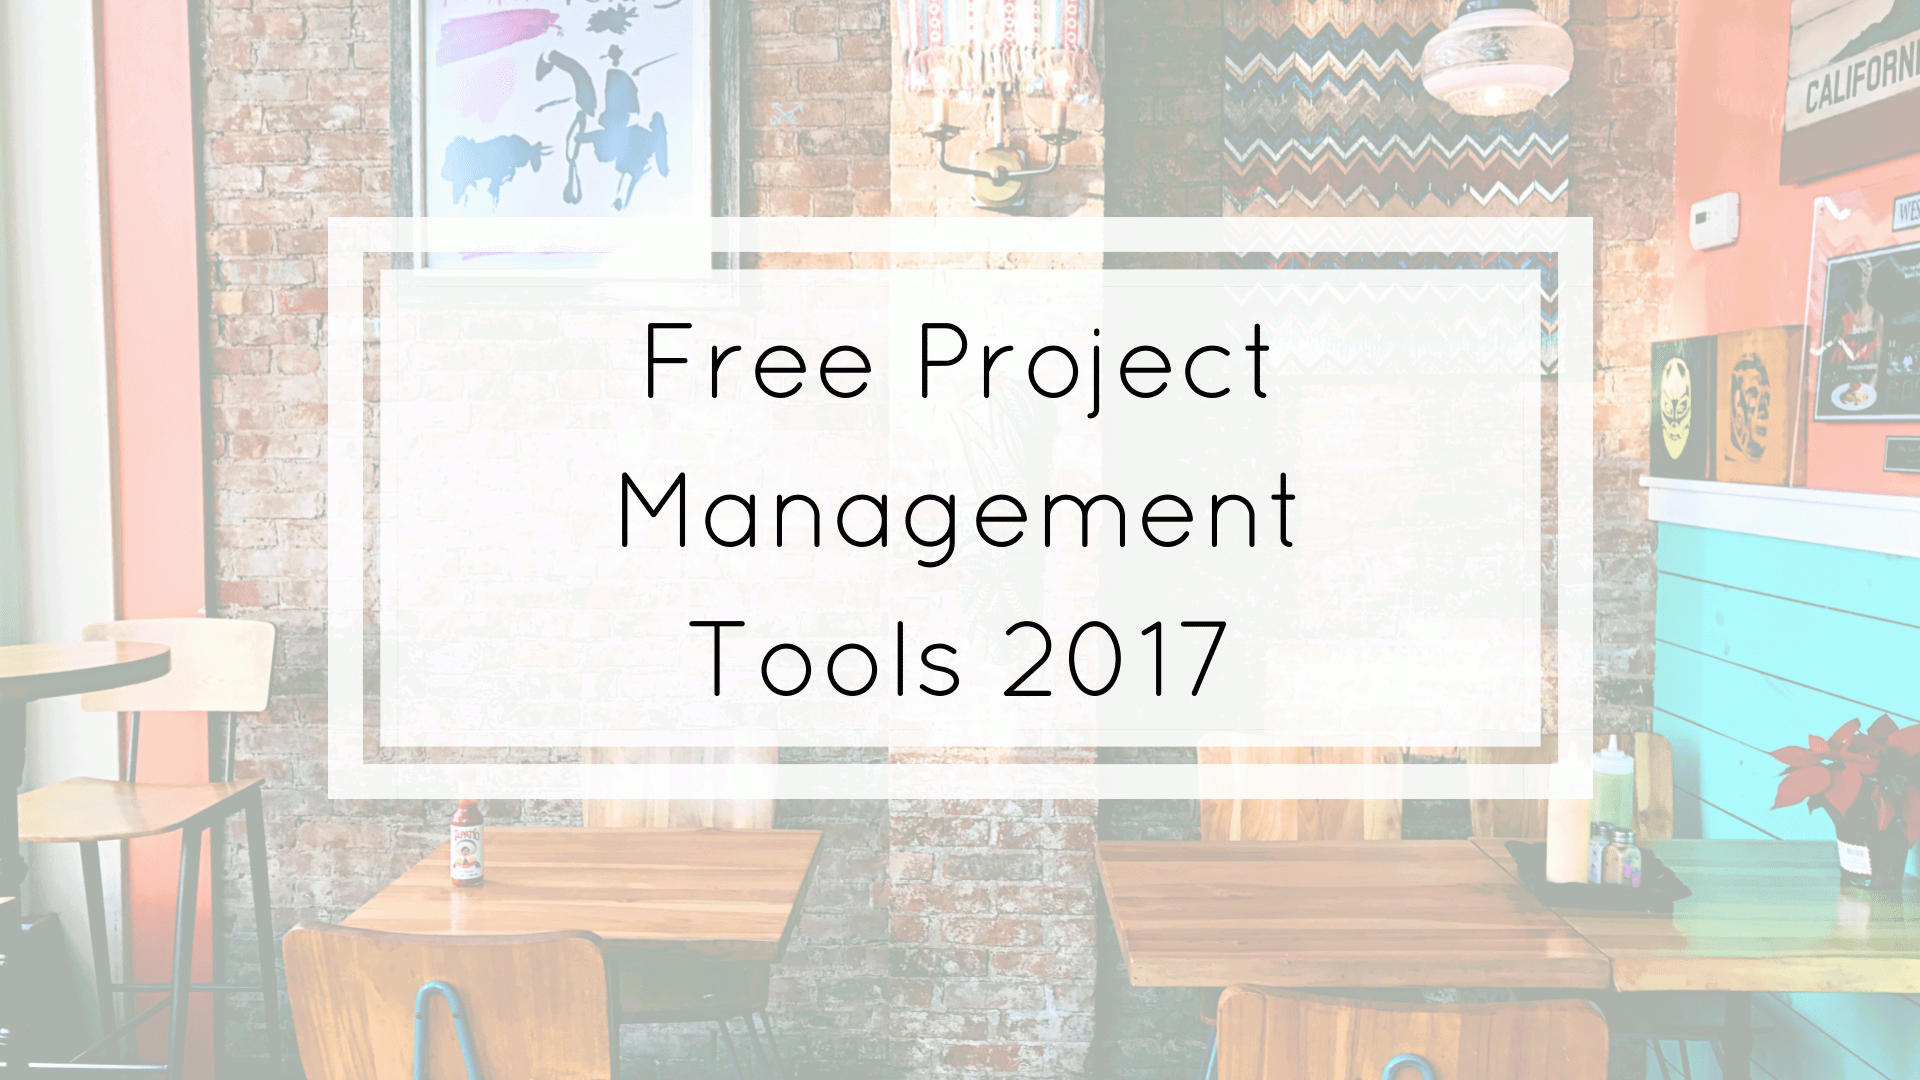 free project management tools 2017